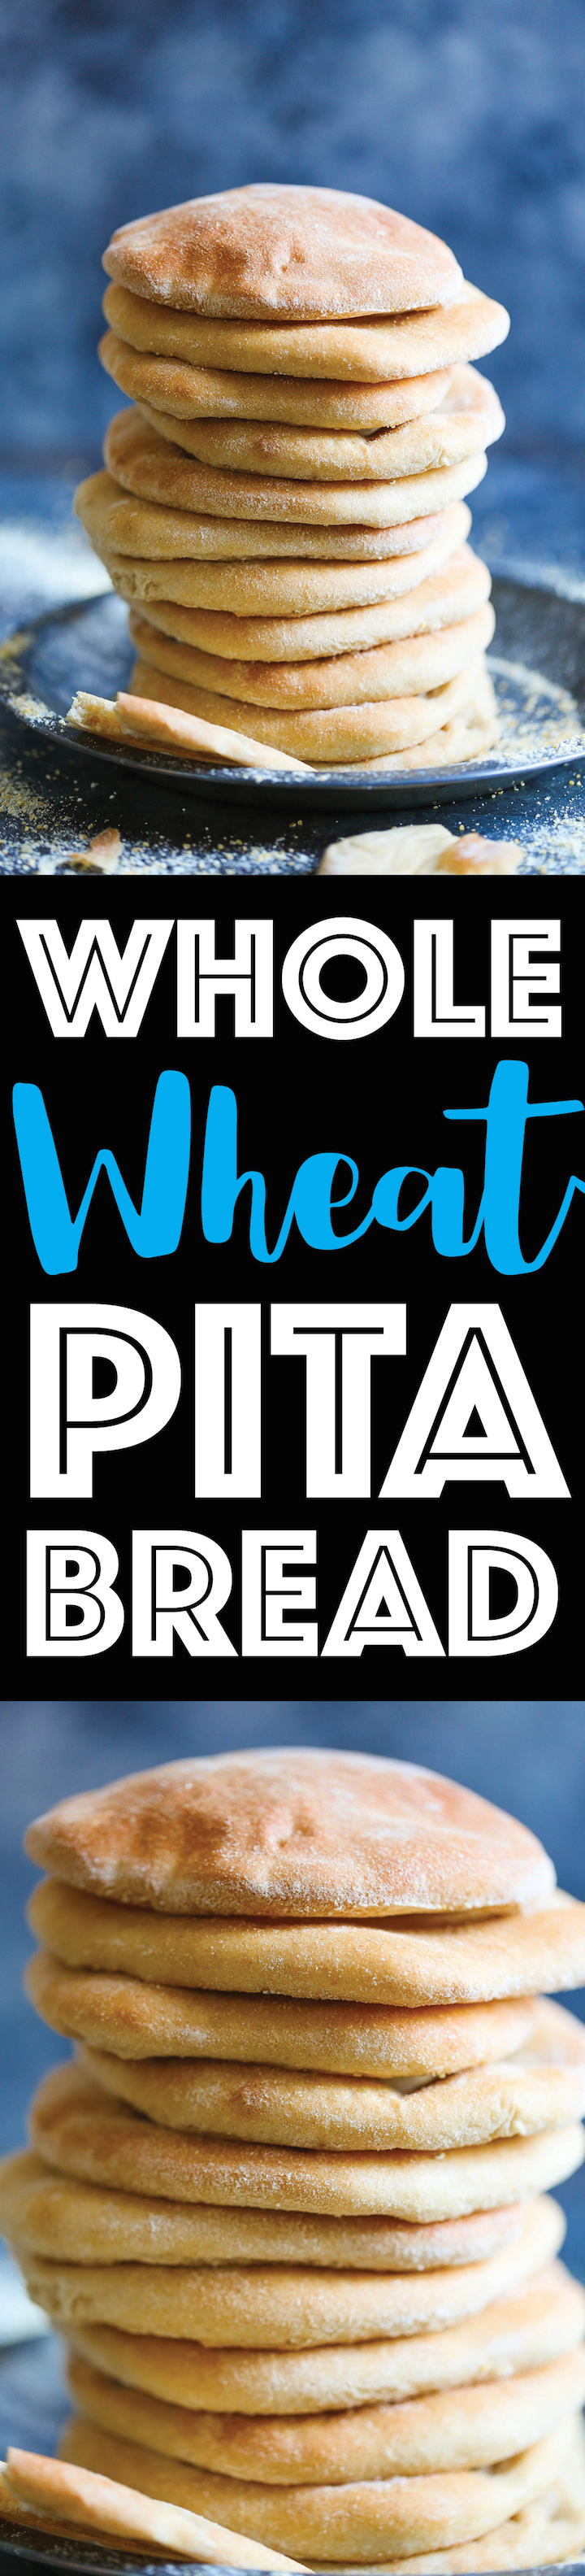 Whole Wheat Pita Bread - There really is nothing better than homemade pita bread. It is so much healthier and it is unbelievably soft and fluffy. You will never want store-bought pita bread EVER AGAIN!